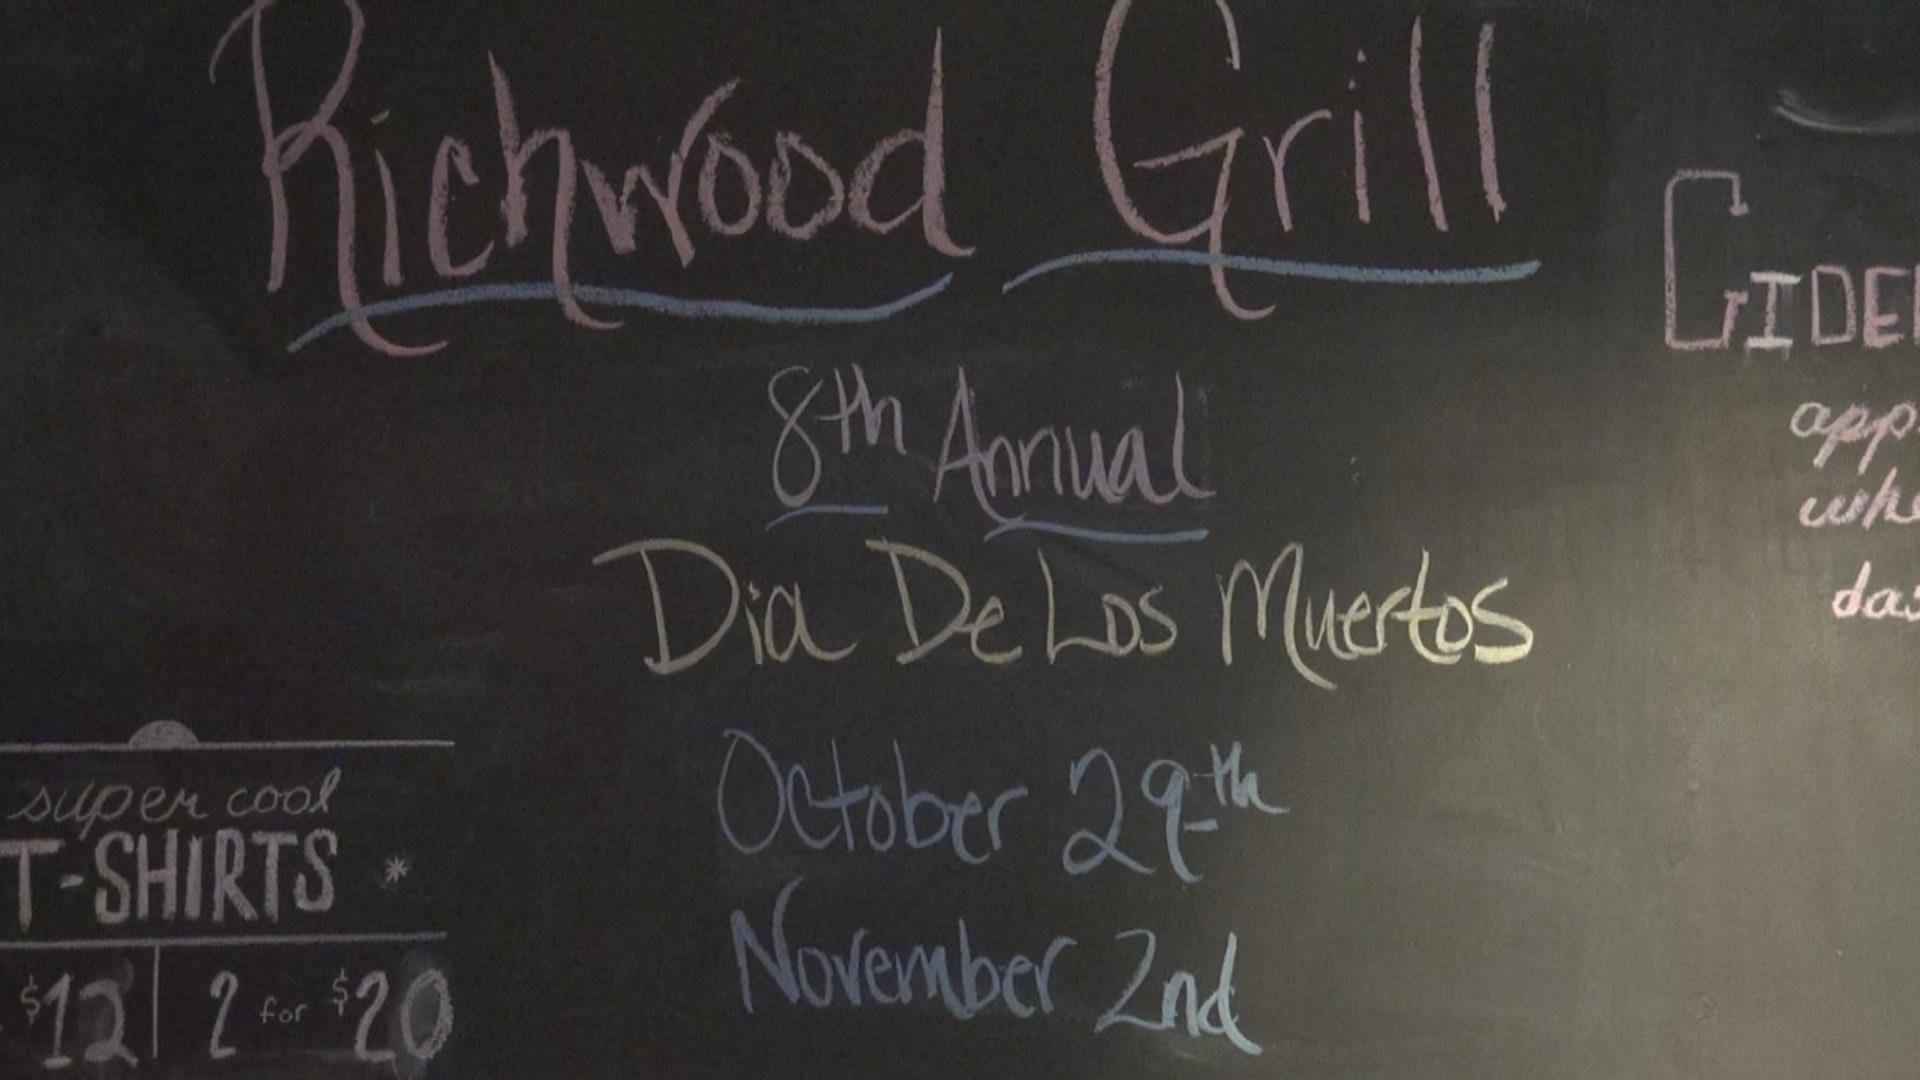 The Richwood Grill will serve 'Day of the Dead' Dinner until Nov. 2